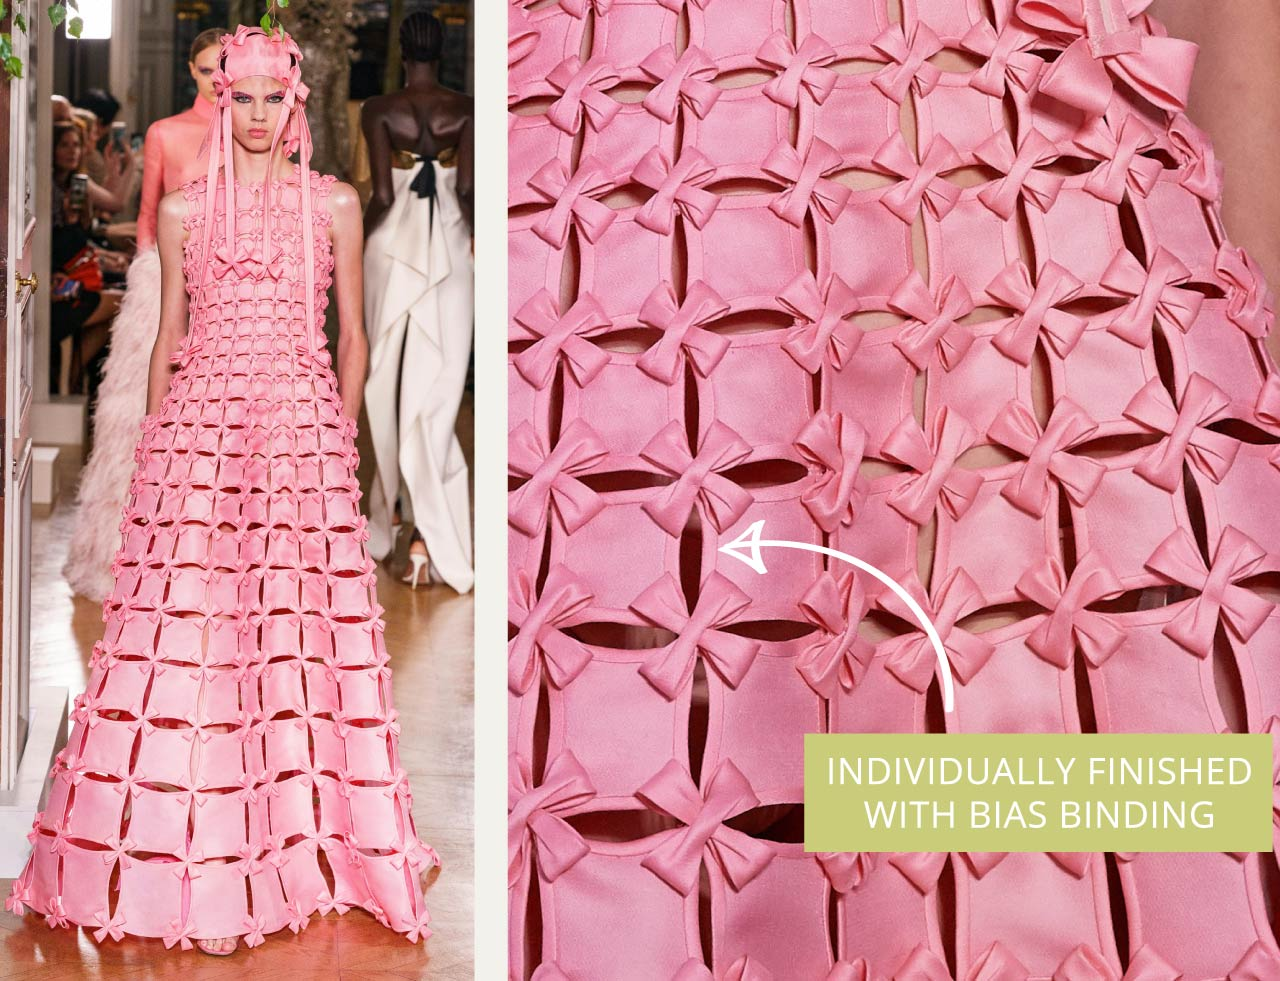 Glossary: Bias Binding at Valentino Couture AW19. Pink fabric pieces individually bound with bias binding.